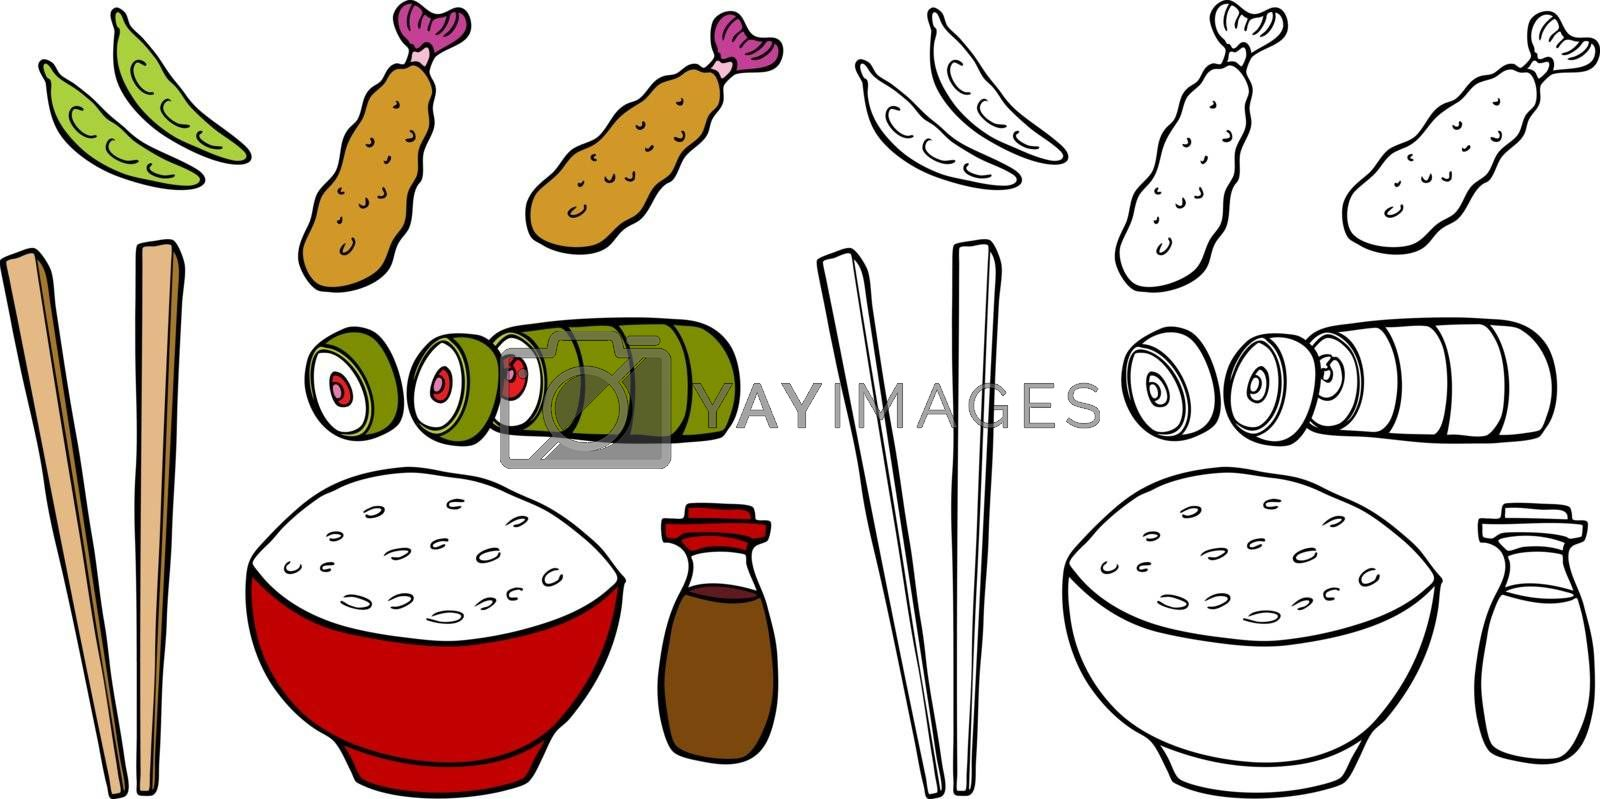 Cartoon image of a variety of different types of Asian food items - both color and black / white versions.